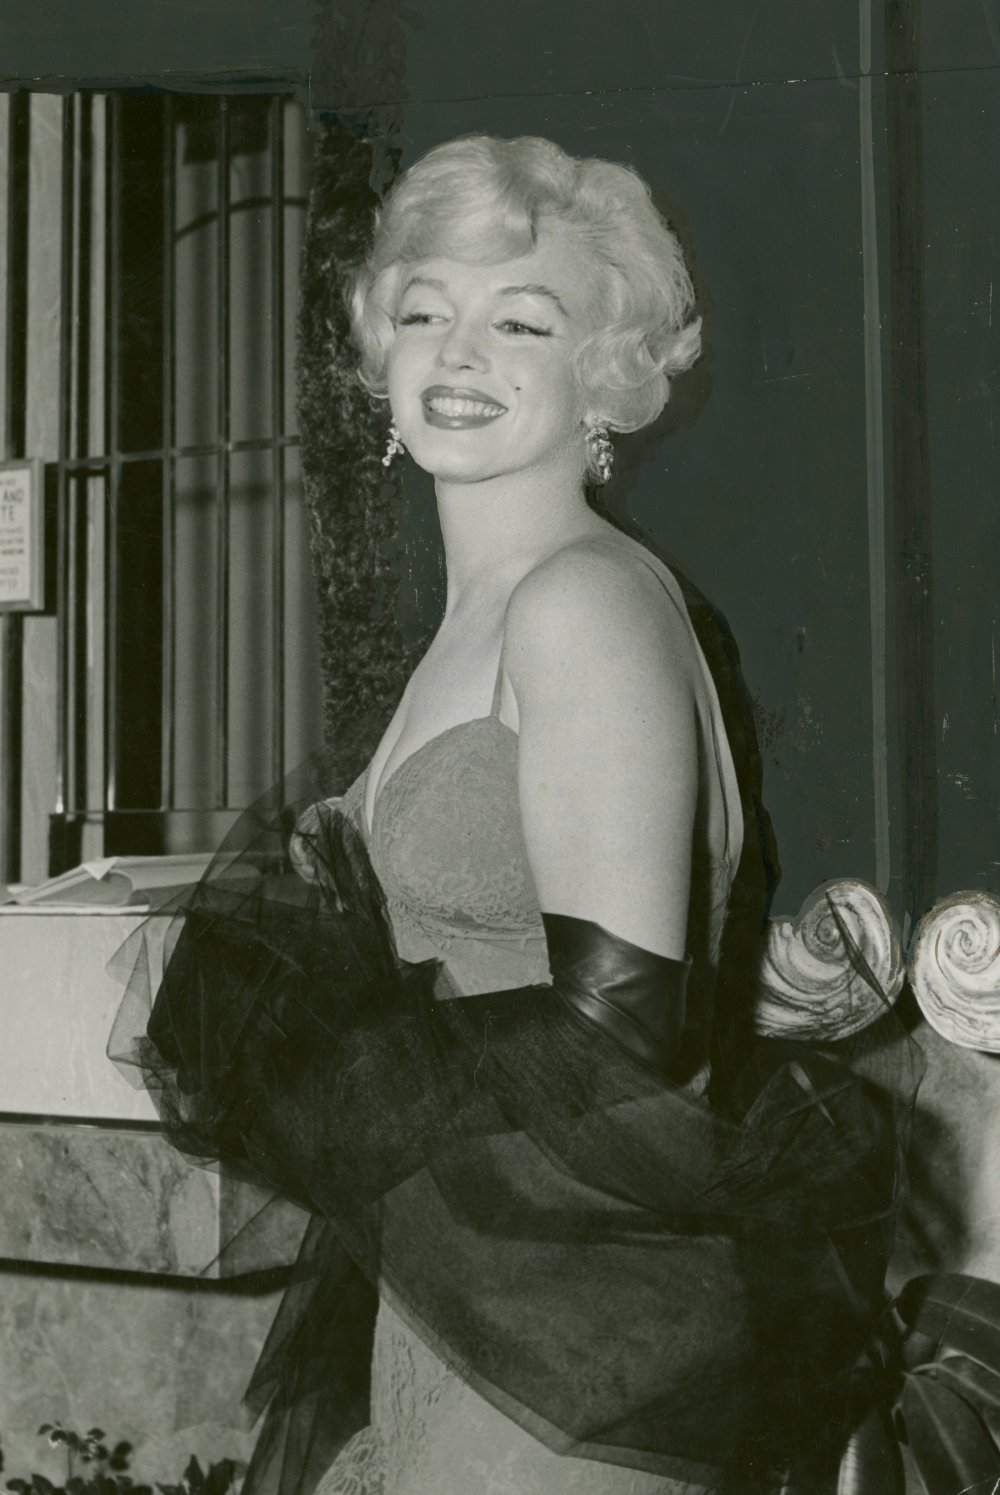 a biography of hollywood beauty marilyn monroe Monroe captured hollywood in a nut shell with her quote that hollywood is a place where they'll pay you a thousand dollars for a kiss and fifty cents for your soul on june 29, 1956, marilyn wed playwright arthur miller.